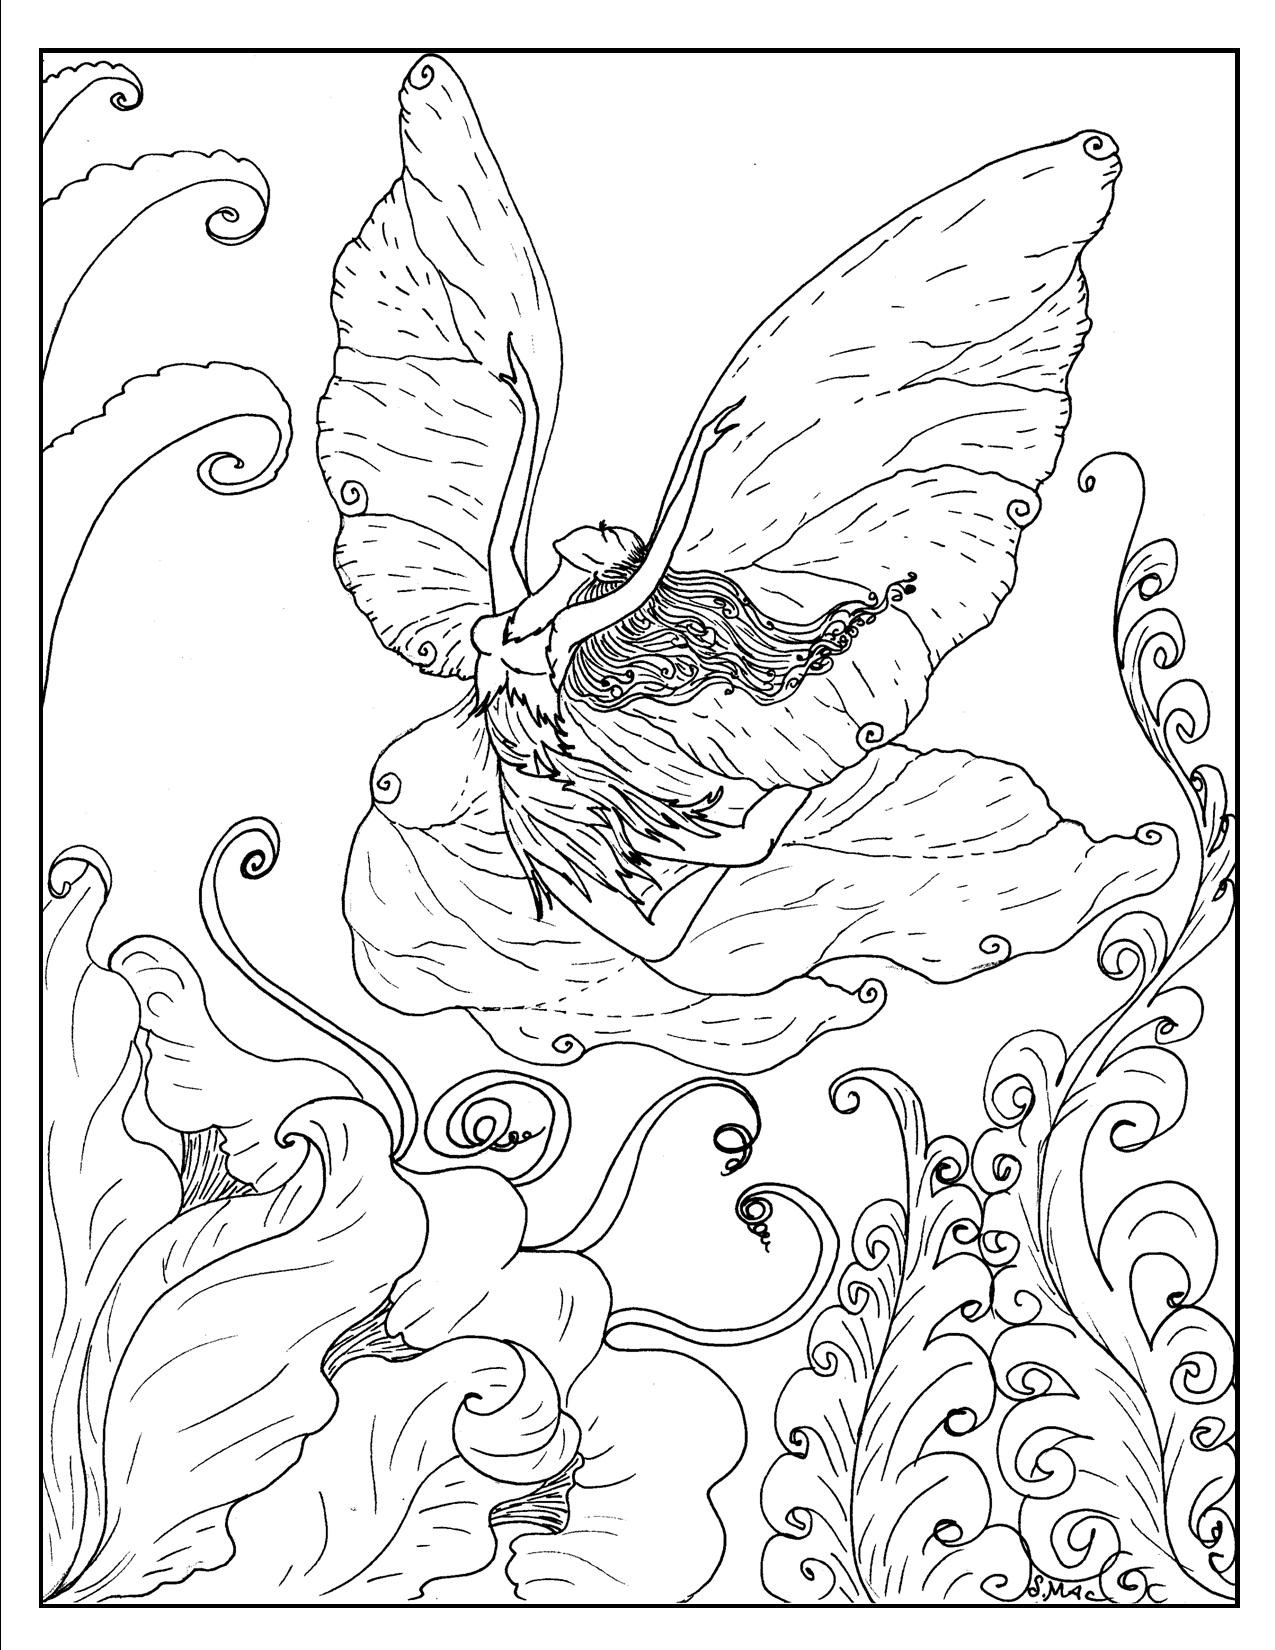 Printable Coloring Sheets Free  Free Printable Fantasy Coloring Pages for Kids Best